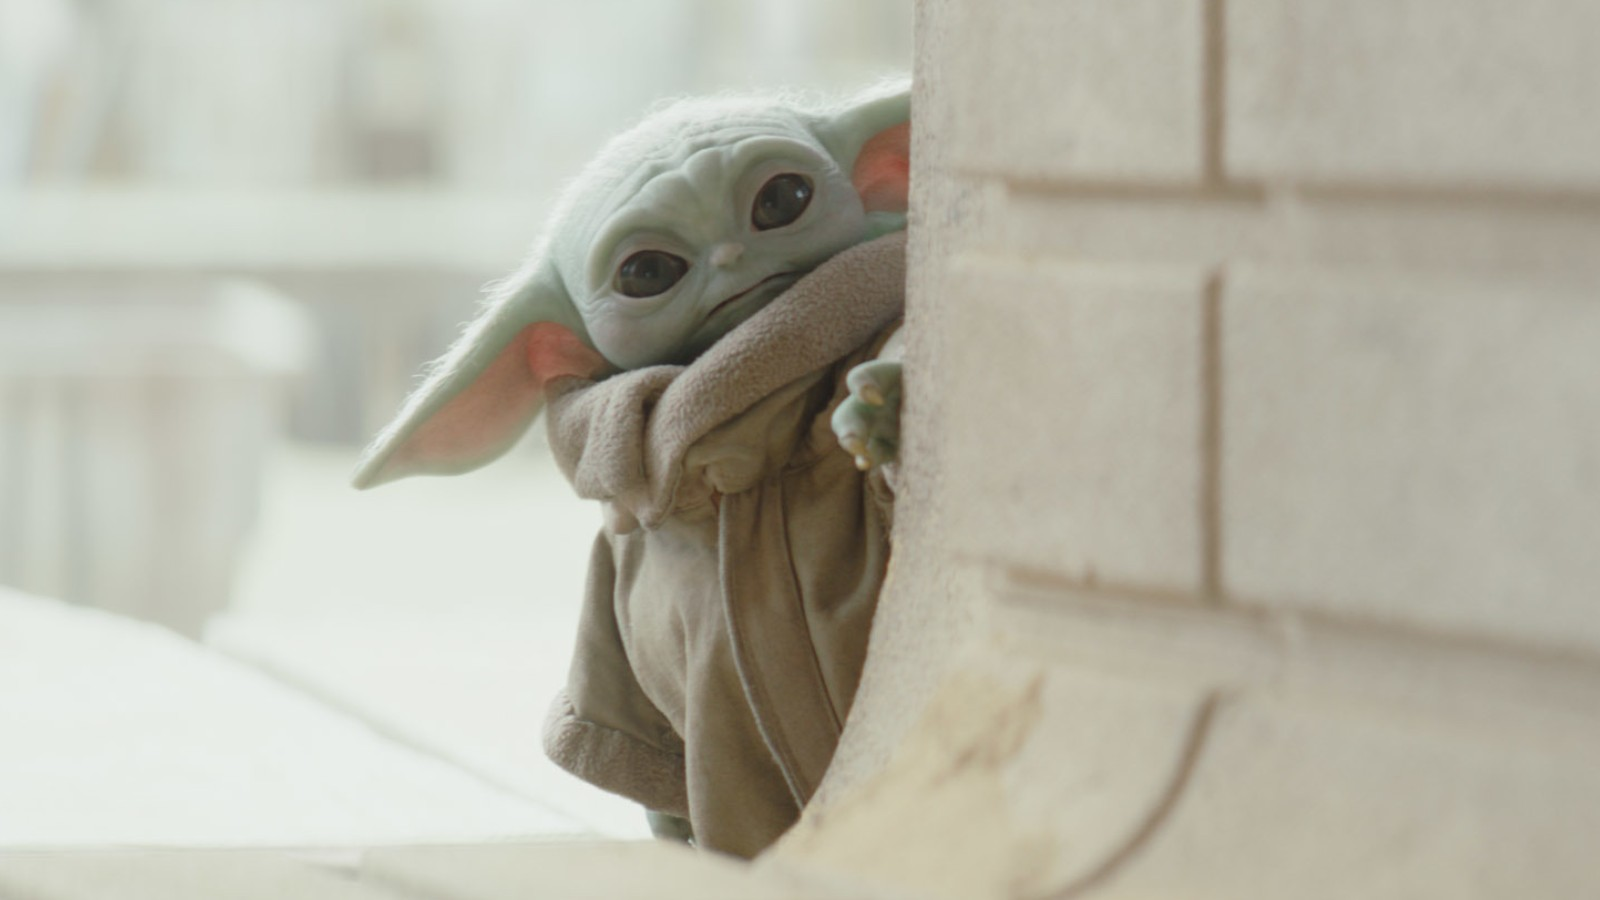 The Mandalorian just revealed Baby Yoda's real name, and ...